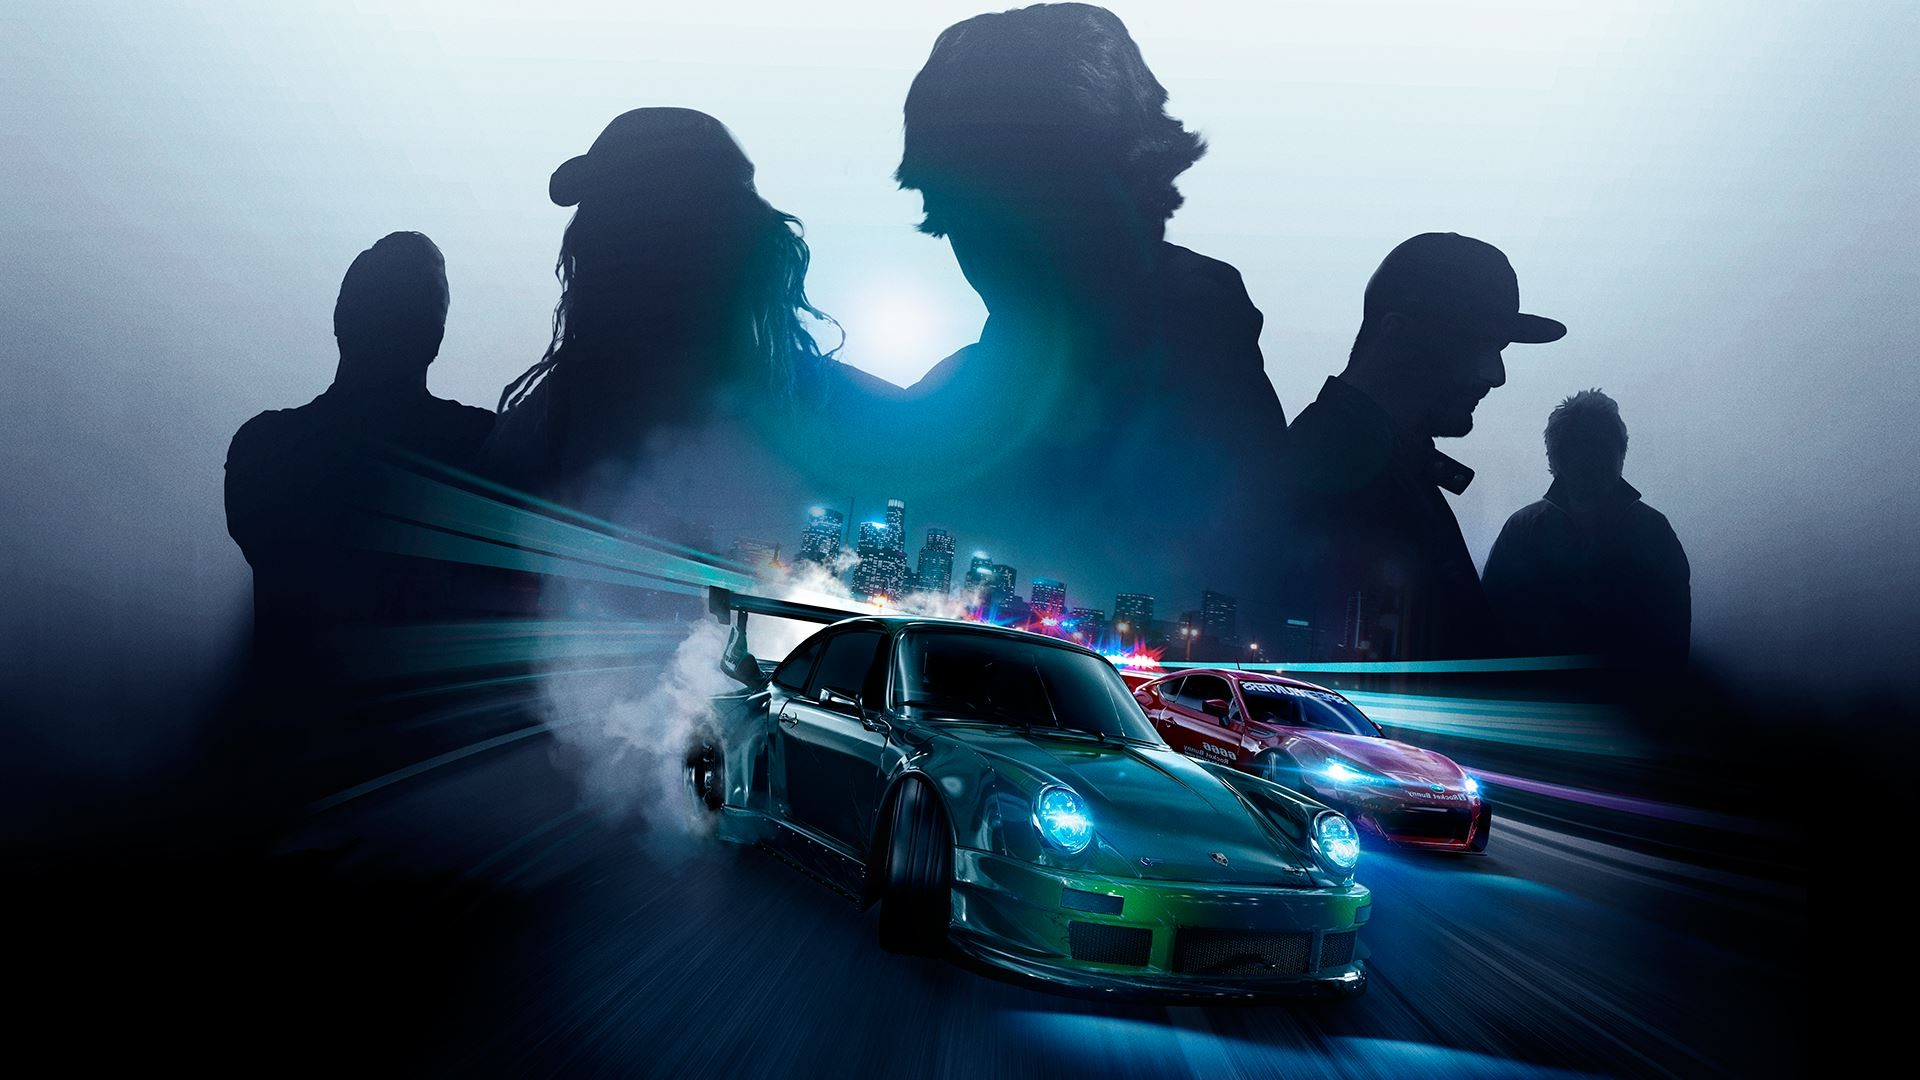 1366x768 Need For Speed 2015 Game 1366x768 Resolution Hd 4k